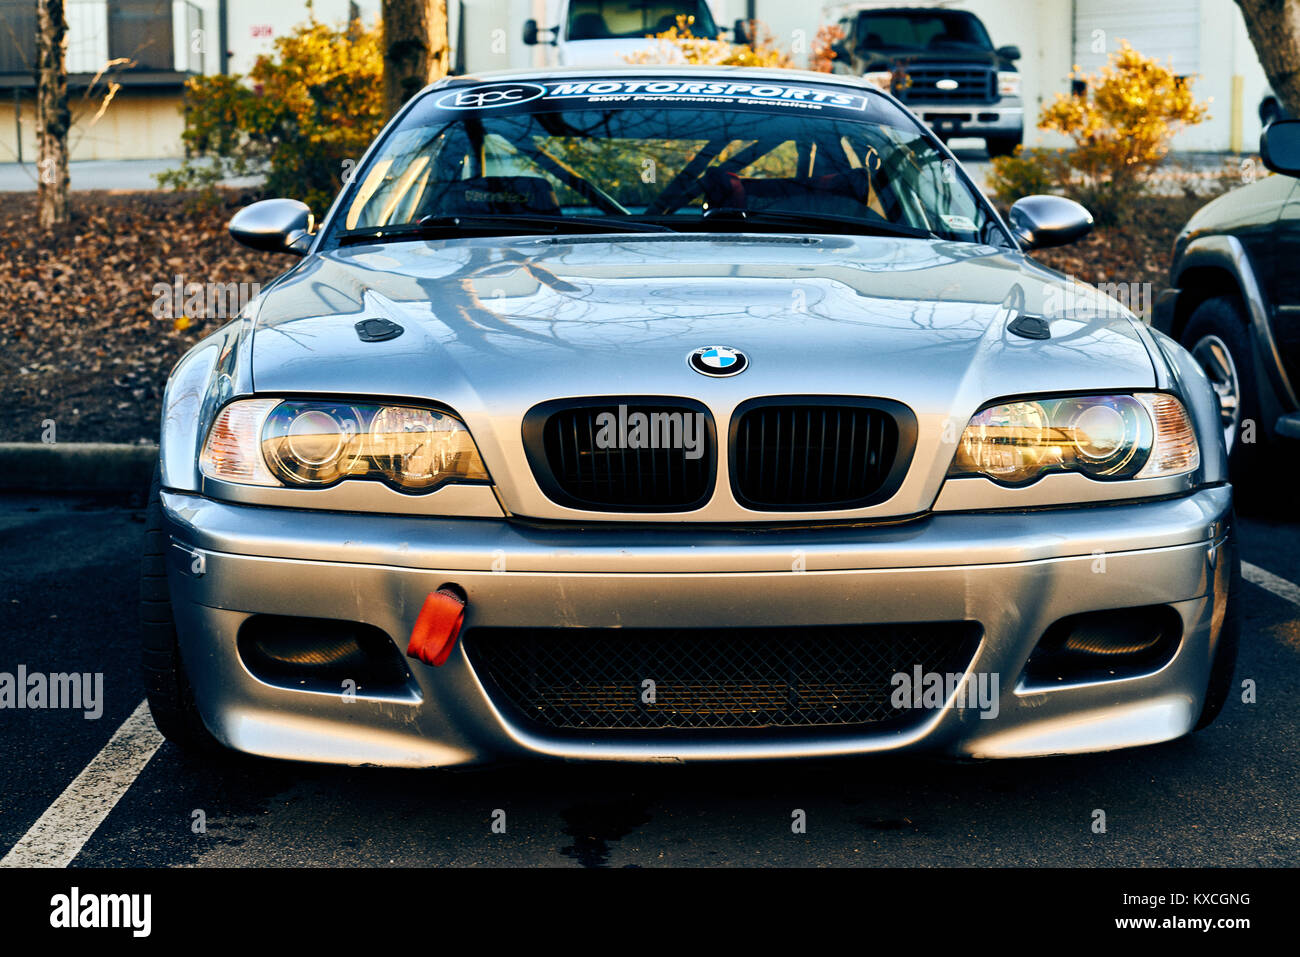 E46 M3 Imagenes De Stock E46 M3 Fotos De Stock Alamy